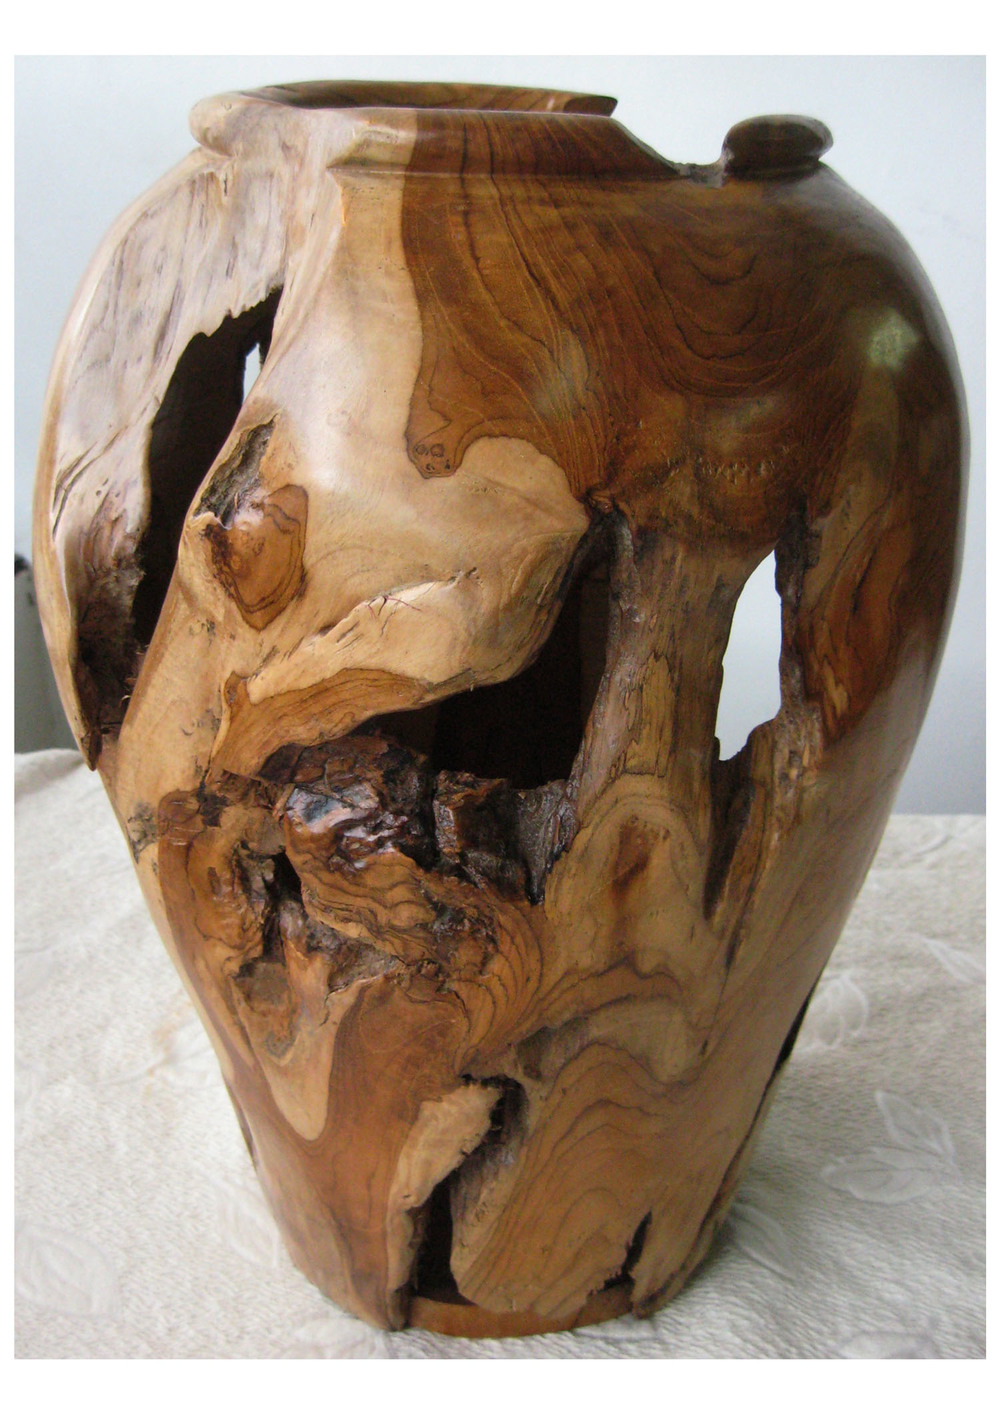 Organically Sculpted Teak Root Vase (2)